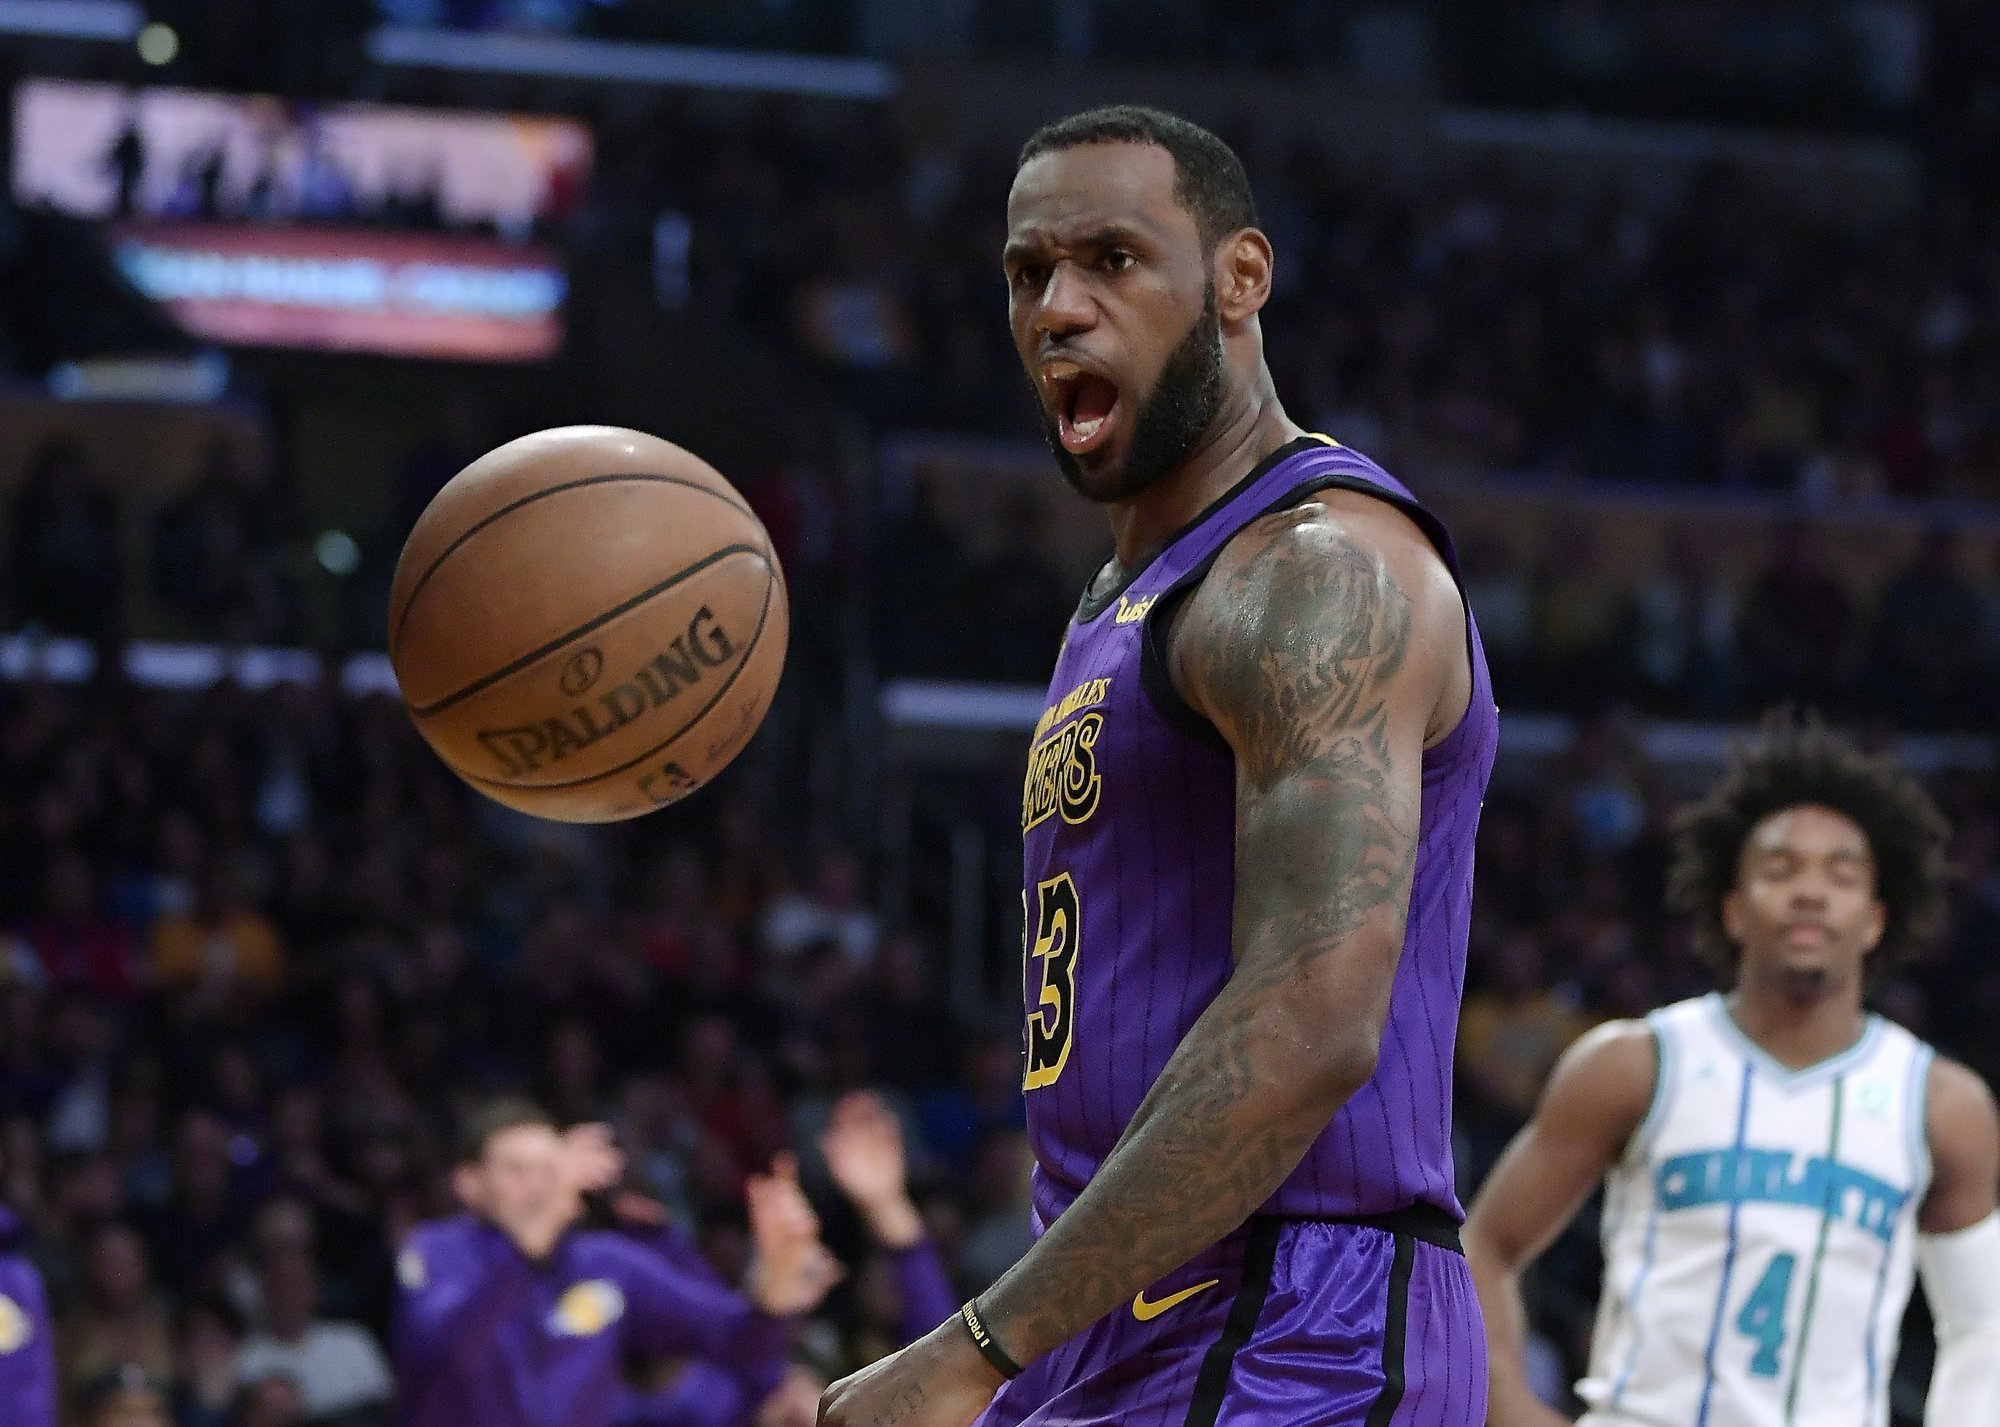 LeBron James to sit out rest of the season